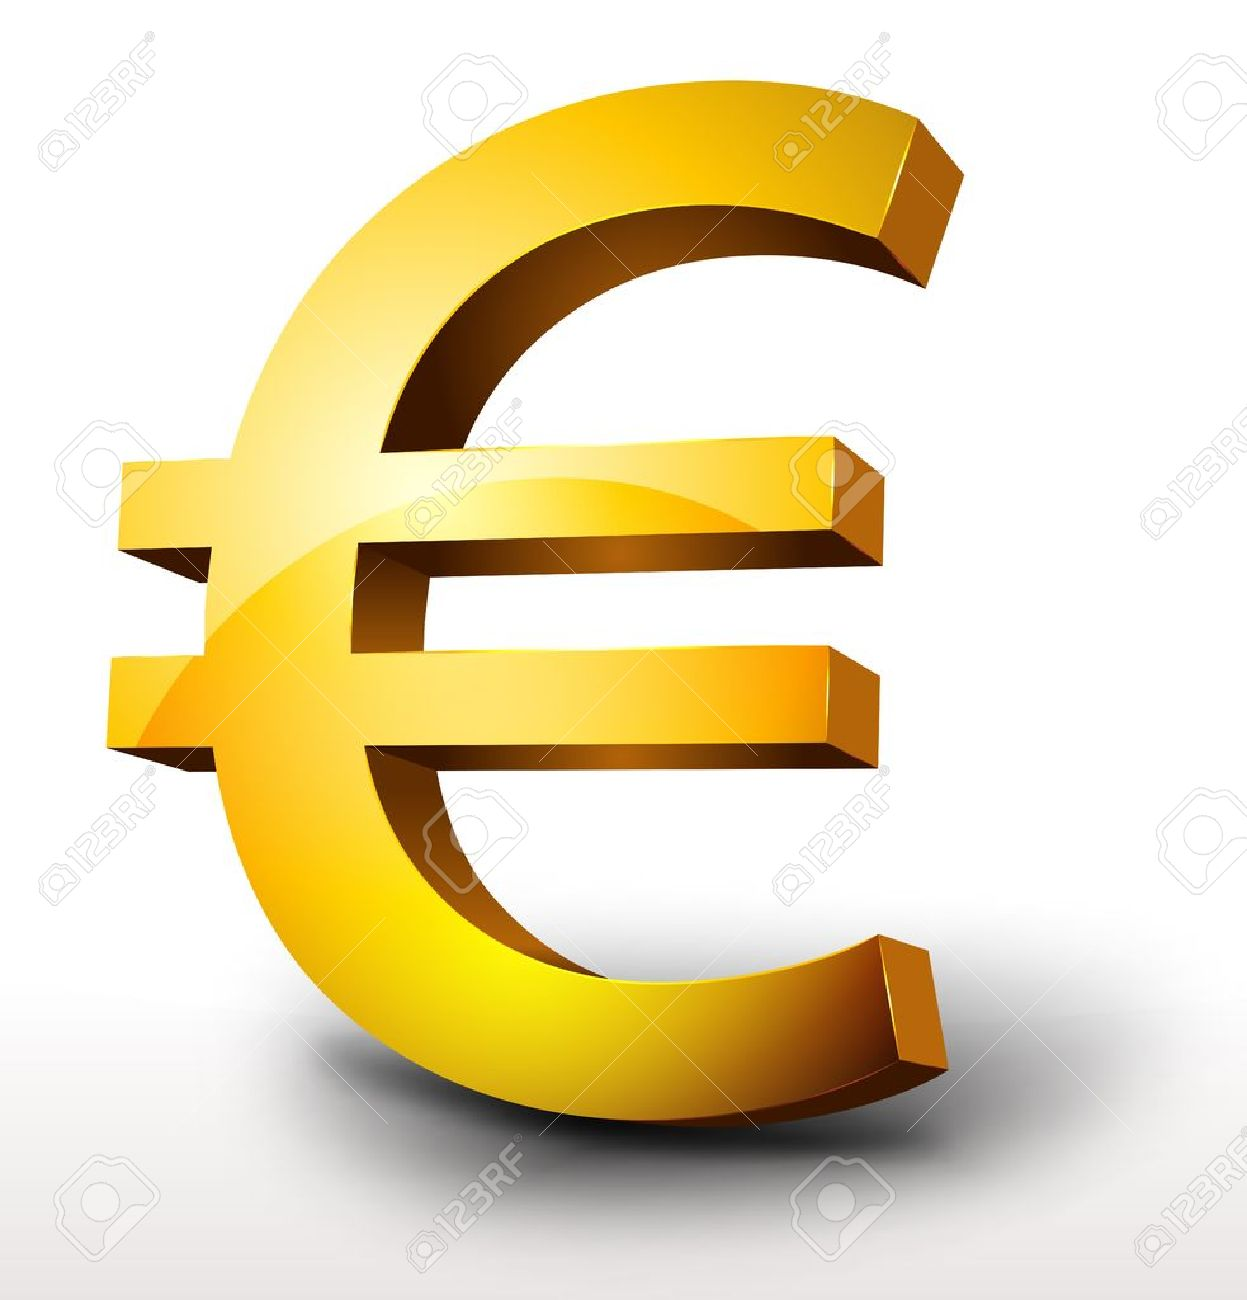 Kmhouseindia european union and countries using euro it has its own currency the euro which is used by 19 of the member countriesaustria belgium cyprus estonia finland france germany greece ireland biocorpaavc